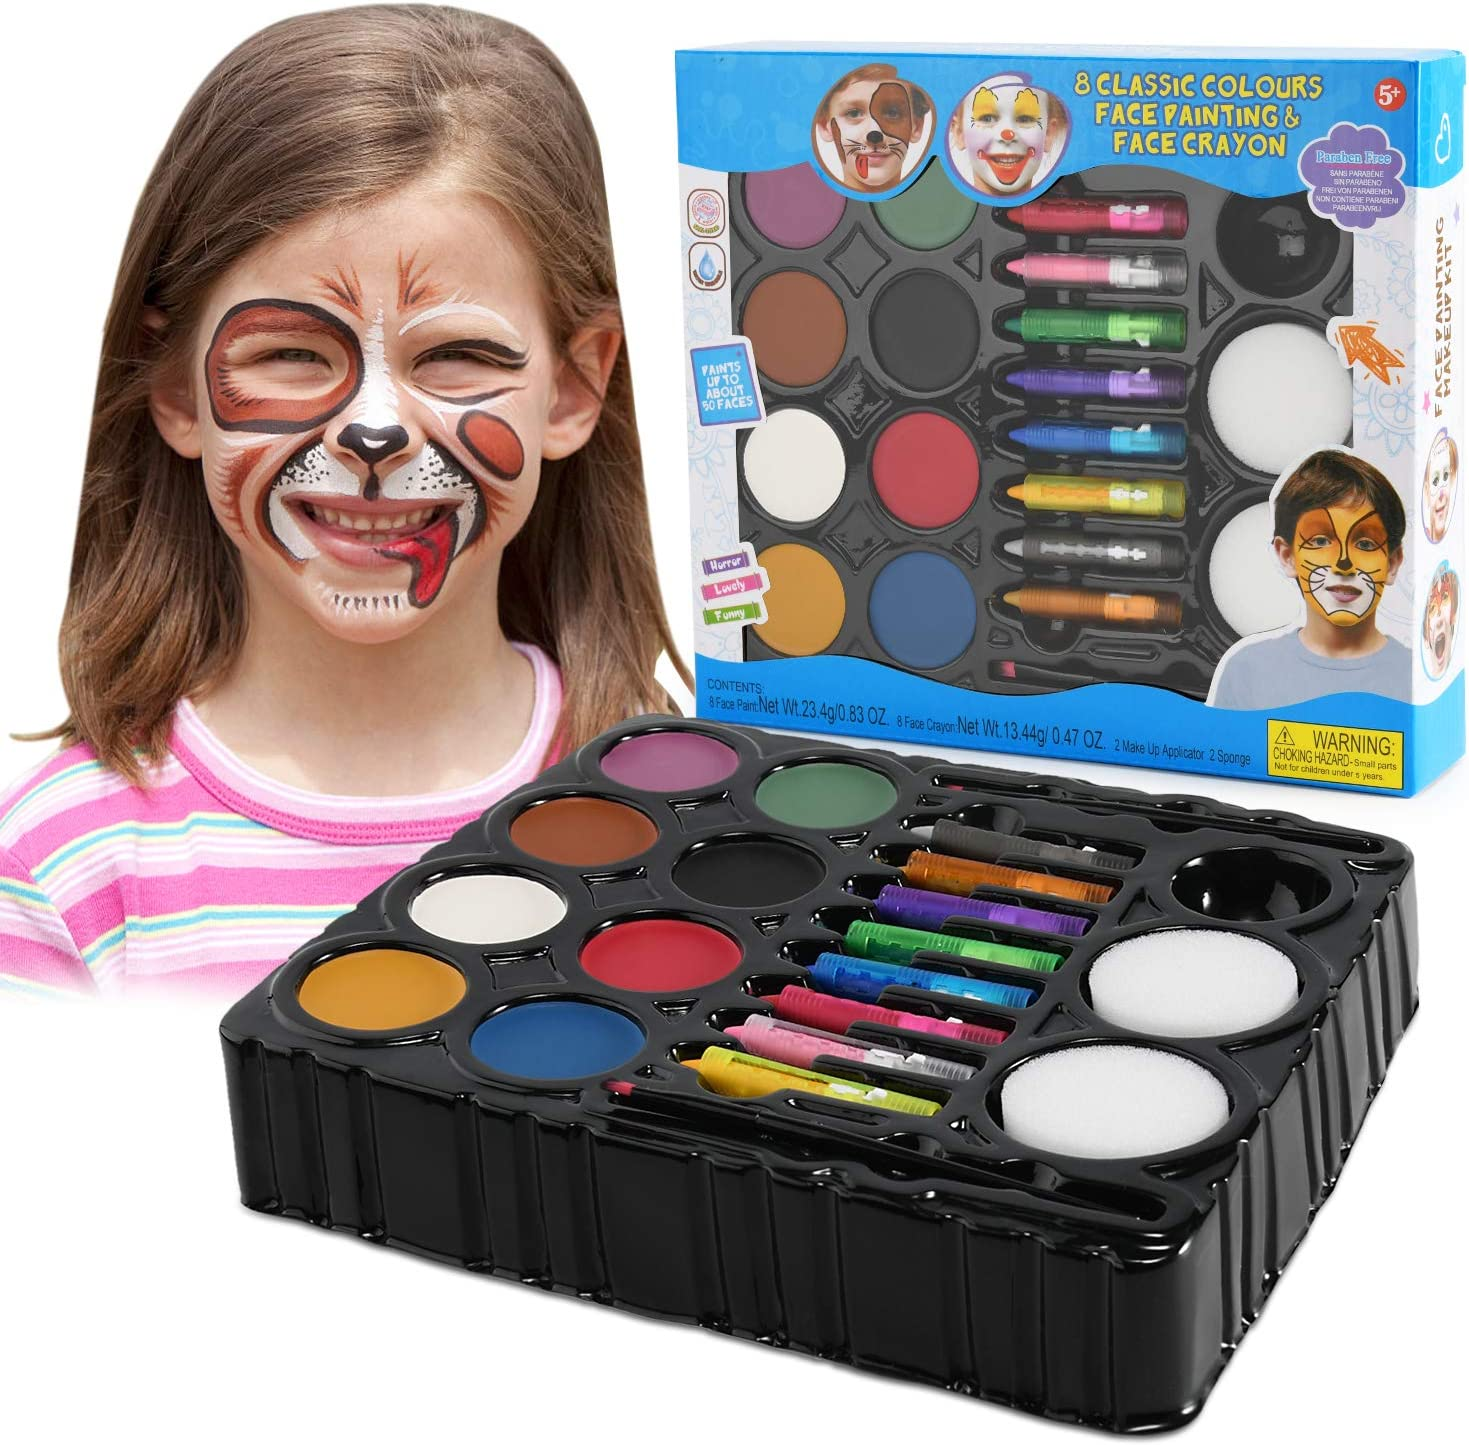 Balnore Face Painting Kit for Kids Max 50% OFF Hall Over item handling ☆ Paints 16 Large Washable